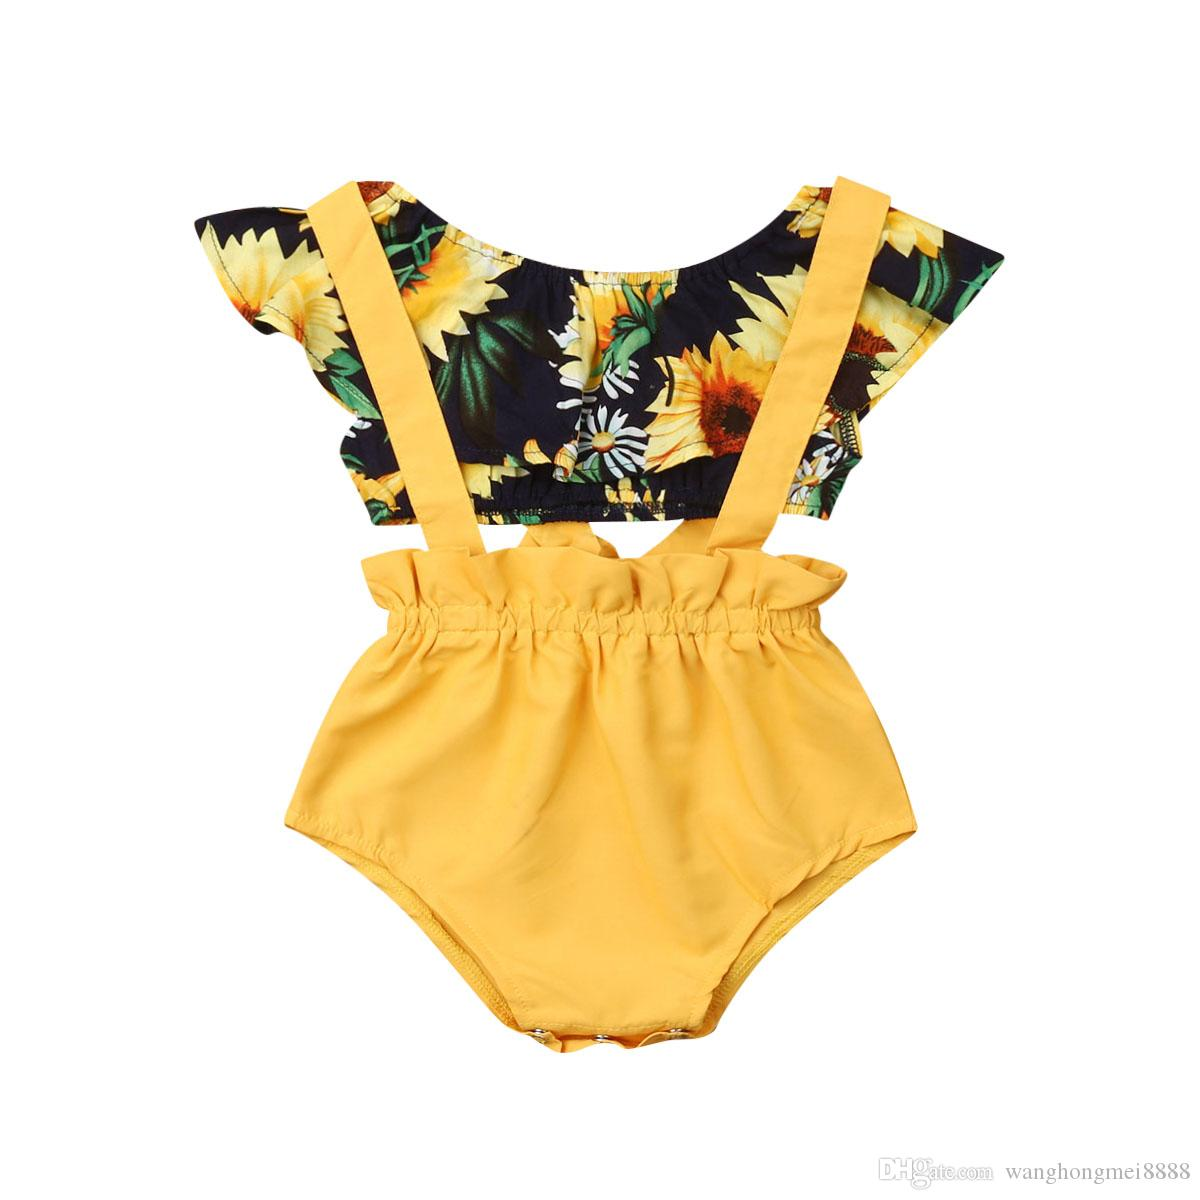 Infant Baby Girls Princess Clothes Summer Newborn Baby Girl Sunflower T-shirt Tops+Suspenders Shorts 2Pcs Outfits Clothes 3-18M